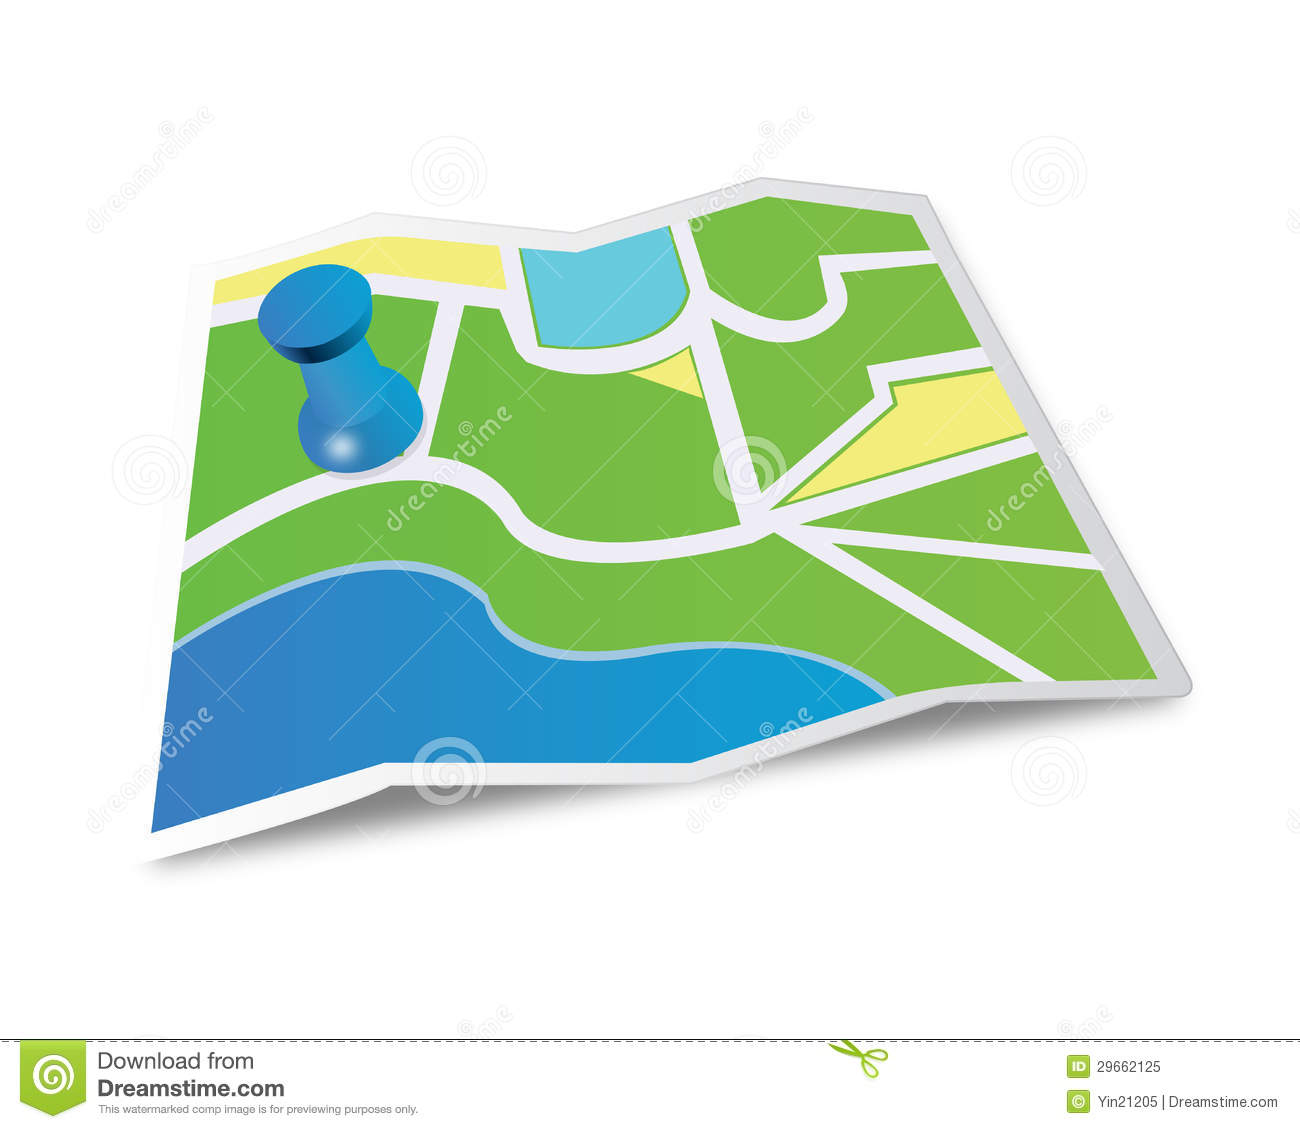 Map Icon Royalty Free Stock Photo - Image: 29662125